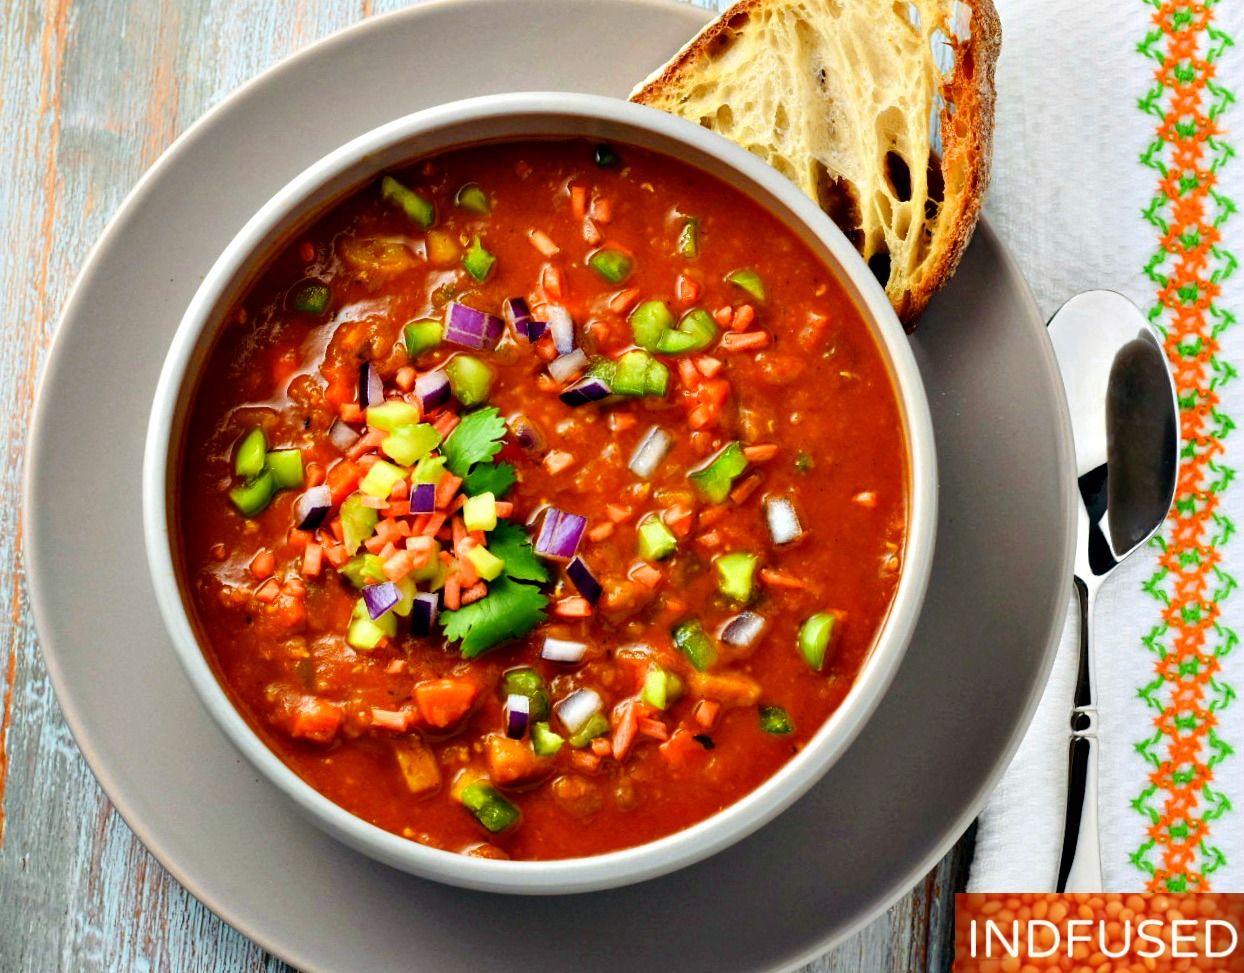 Creole Inspired Vegetarian Stew- loaded with crispy crunchy veggies and gluten free!